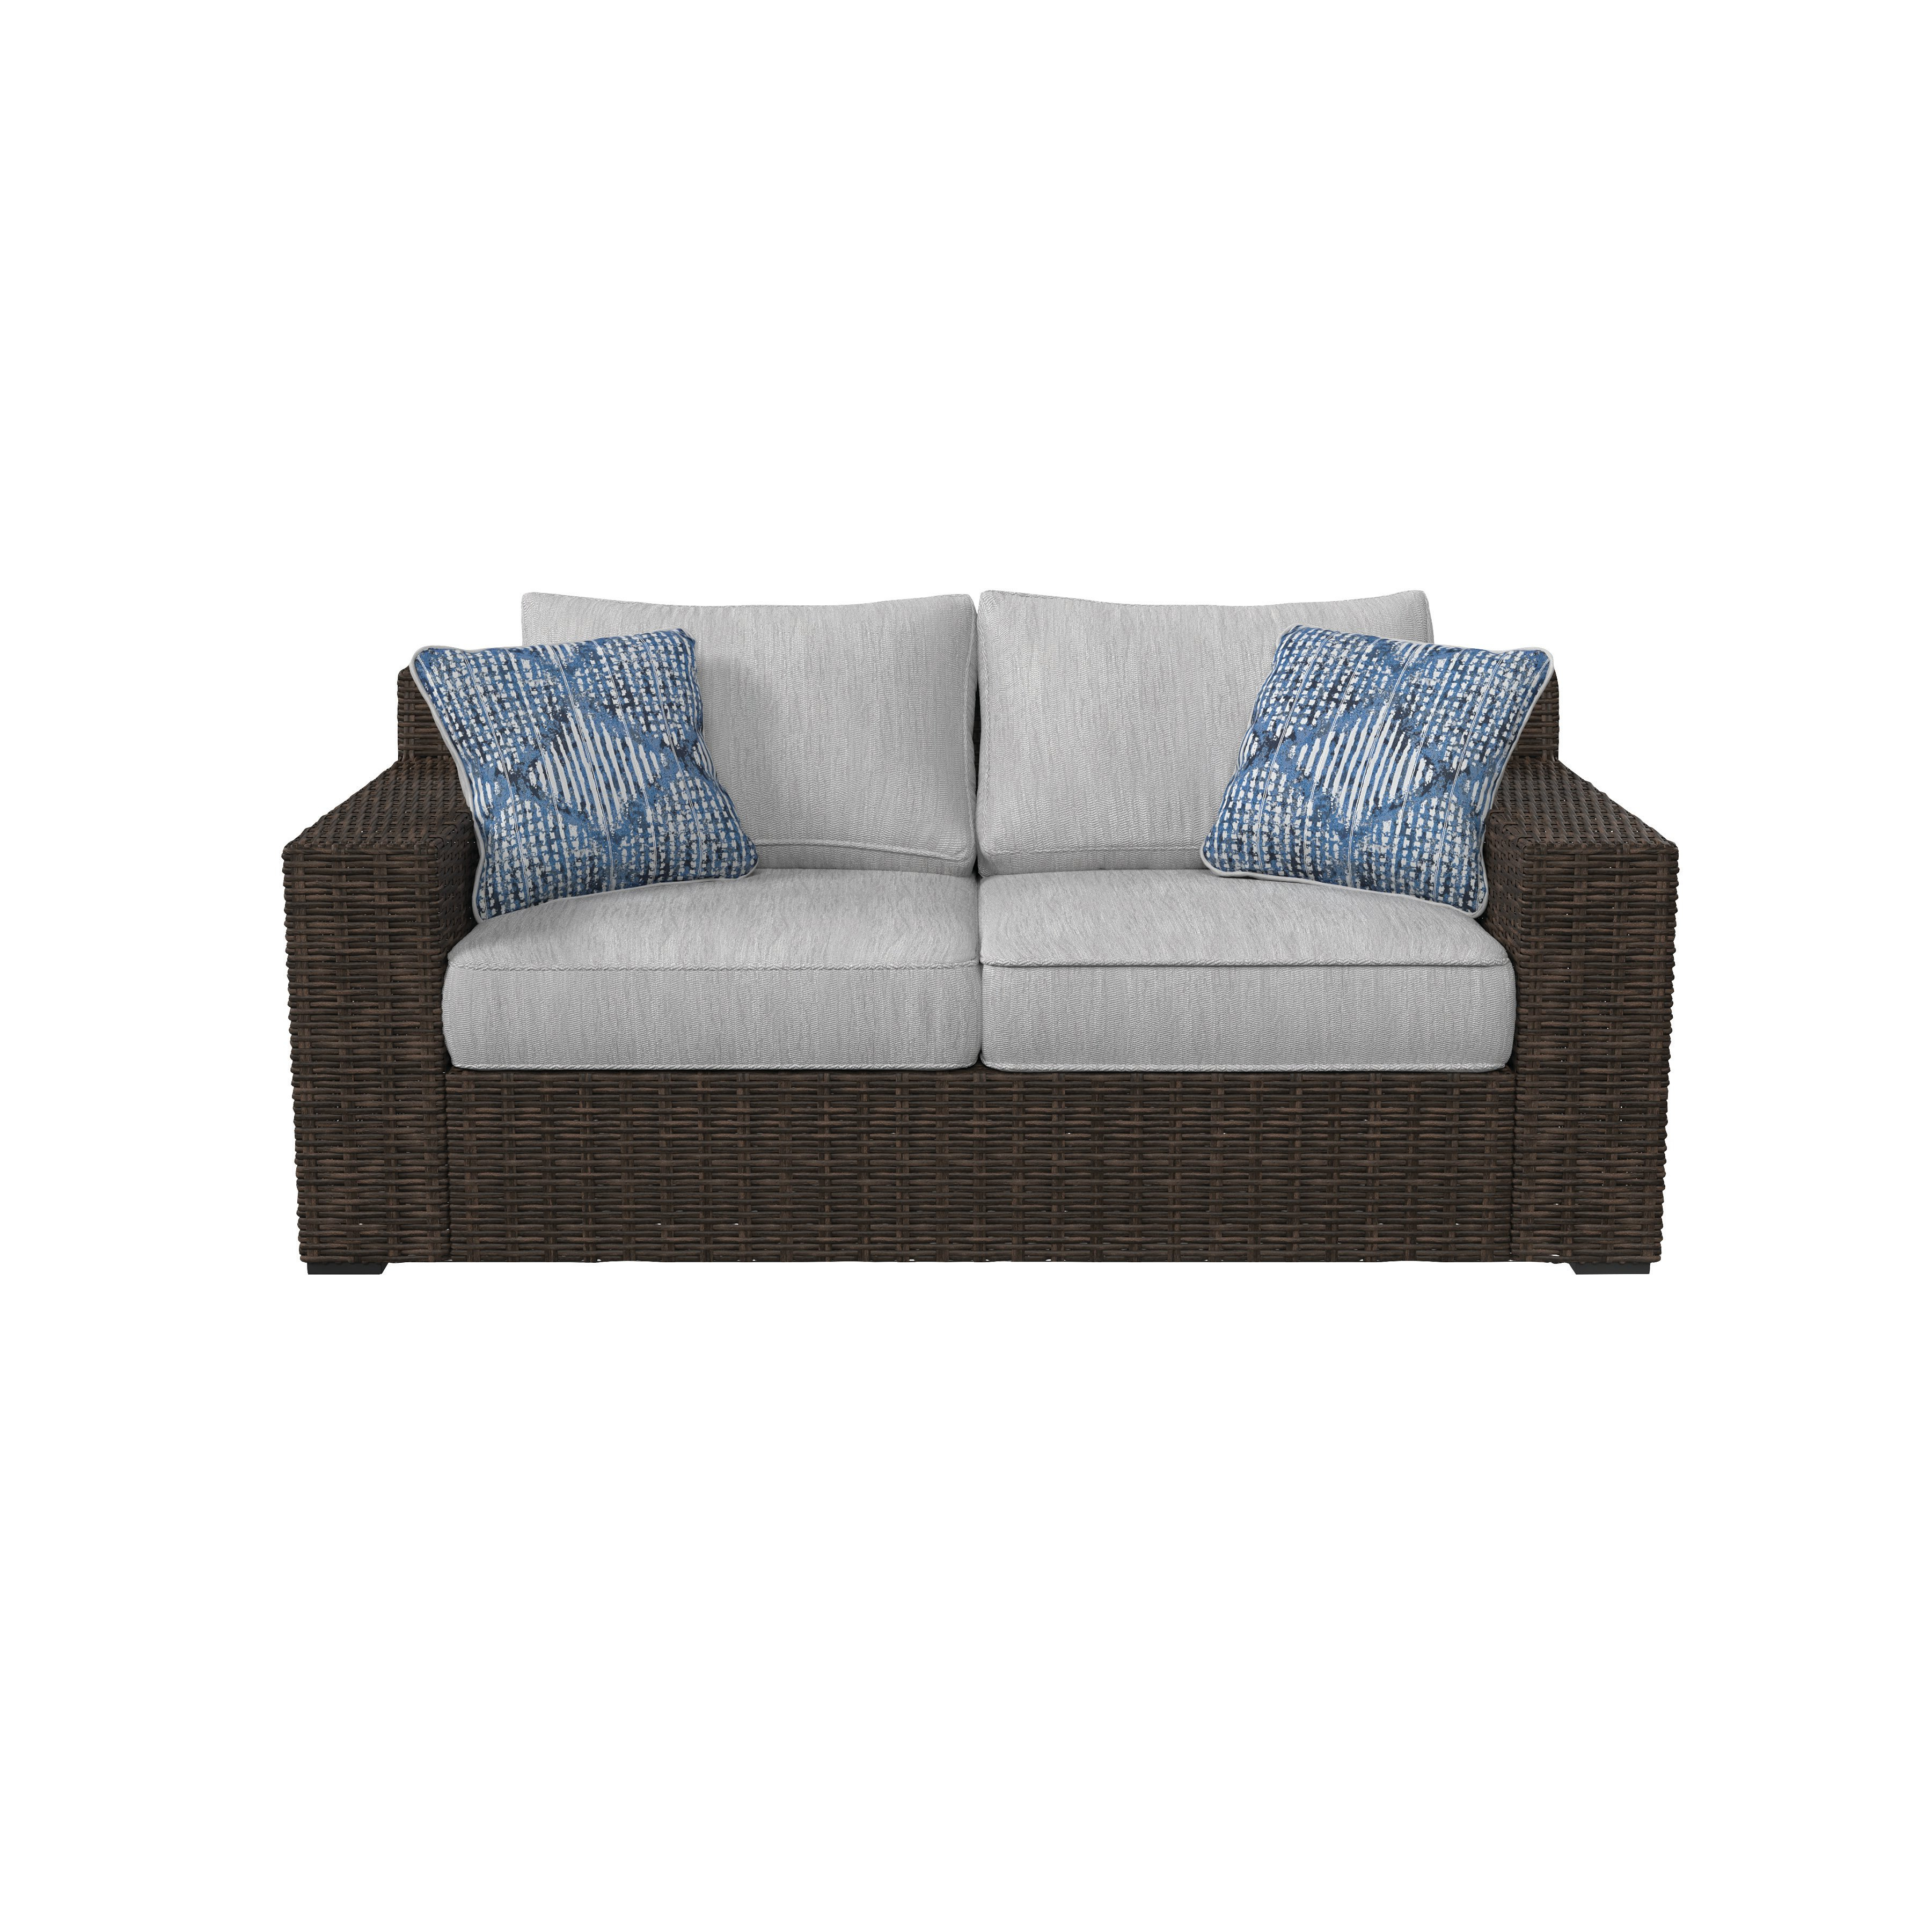 Falmouth Loveseats With Cushions Pertaining To 2019 Oreland Loveseat With Cushions (View 11 of 20)